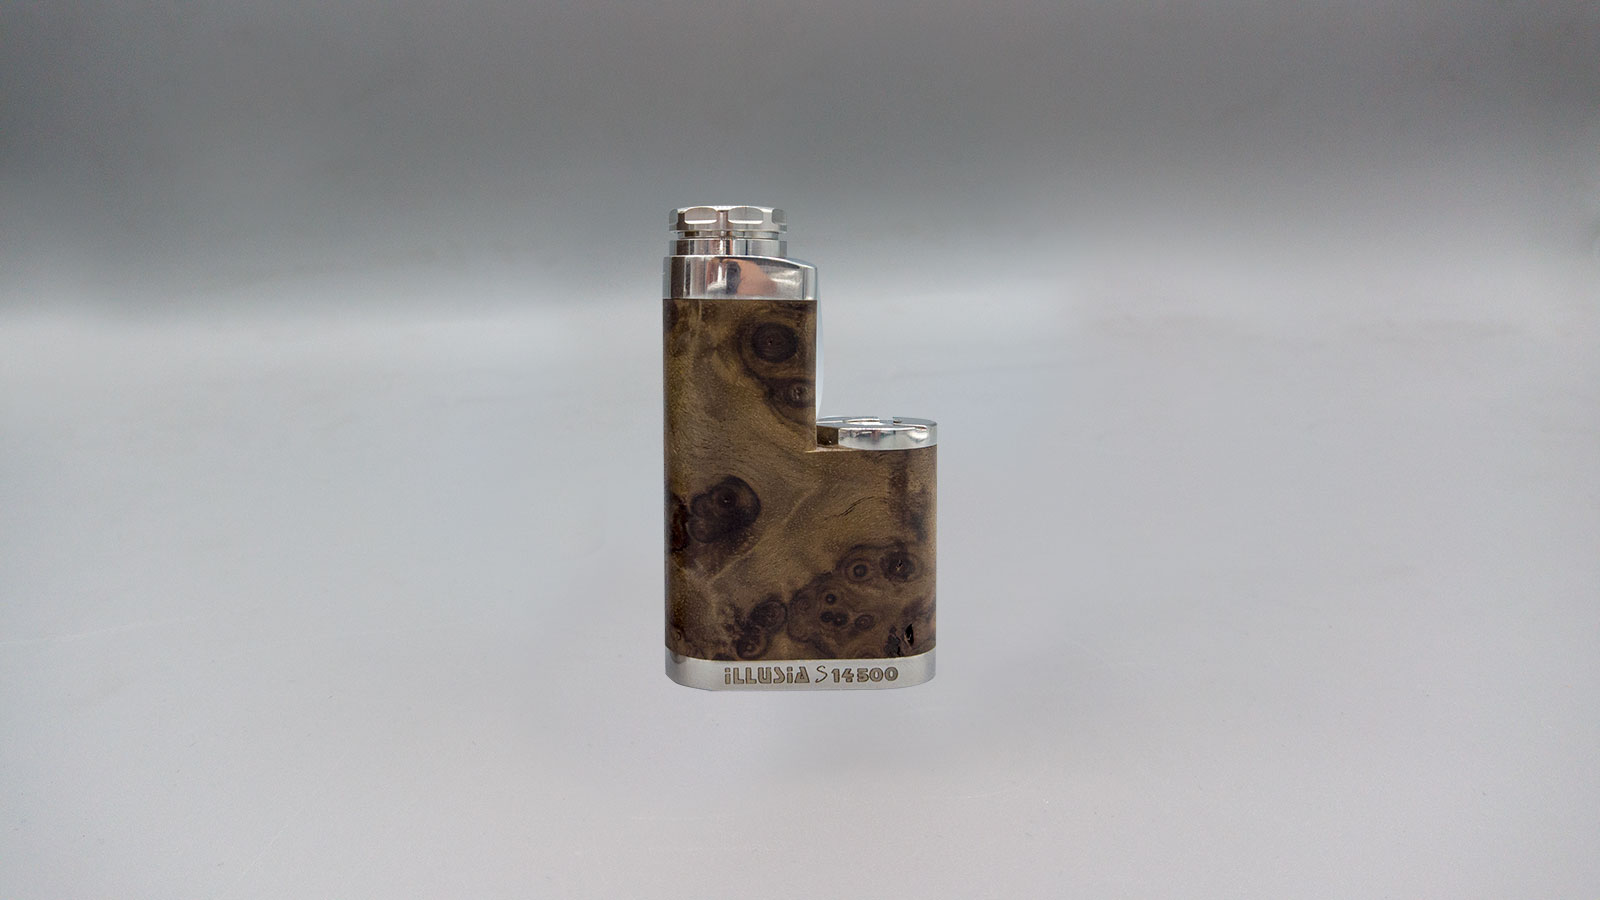 ILLUSIA S MECH MOD 14 Series